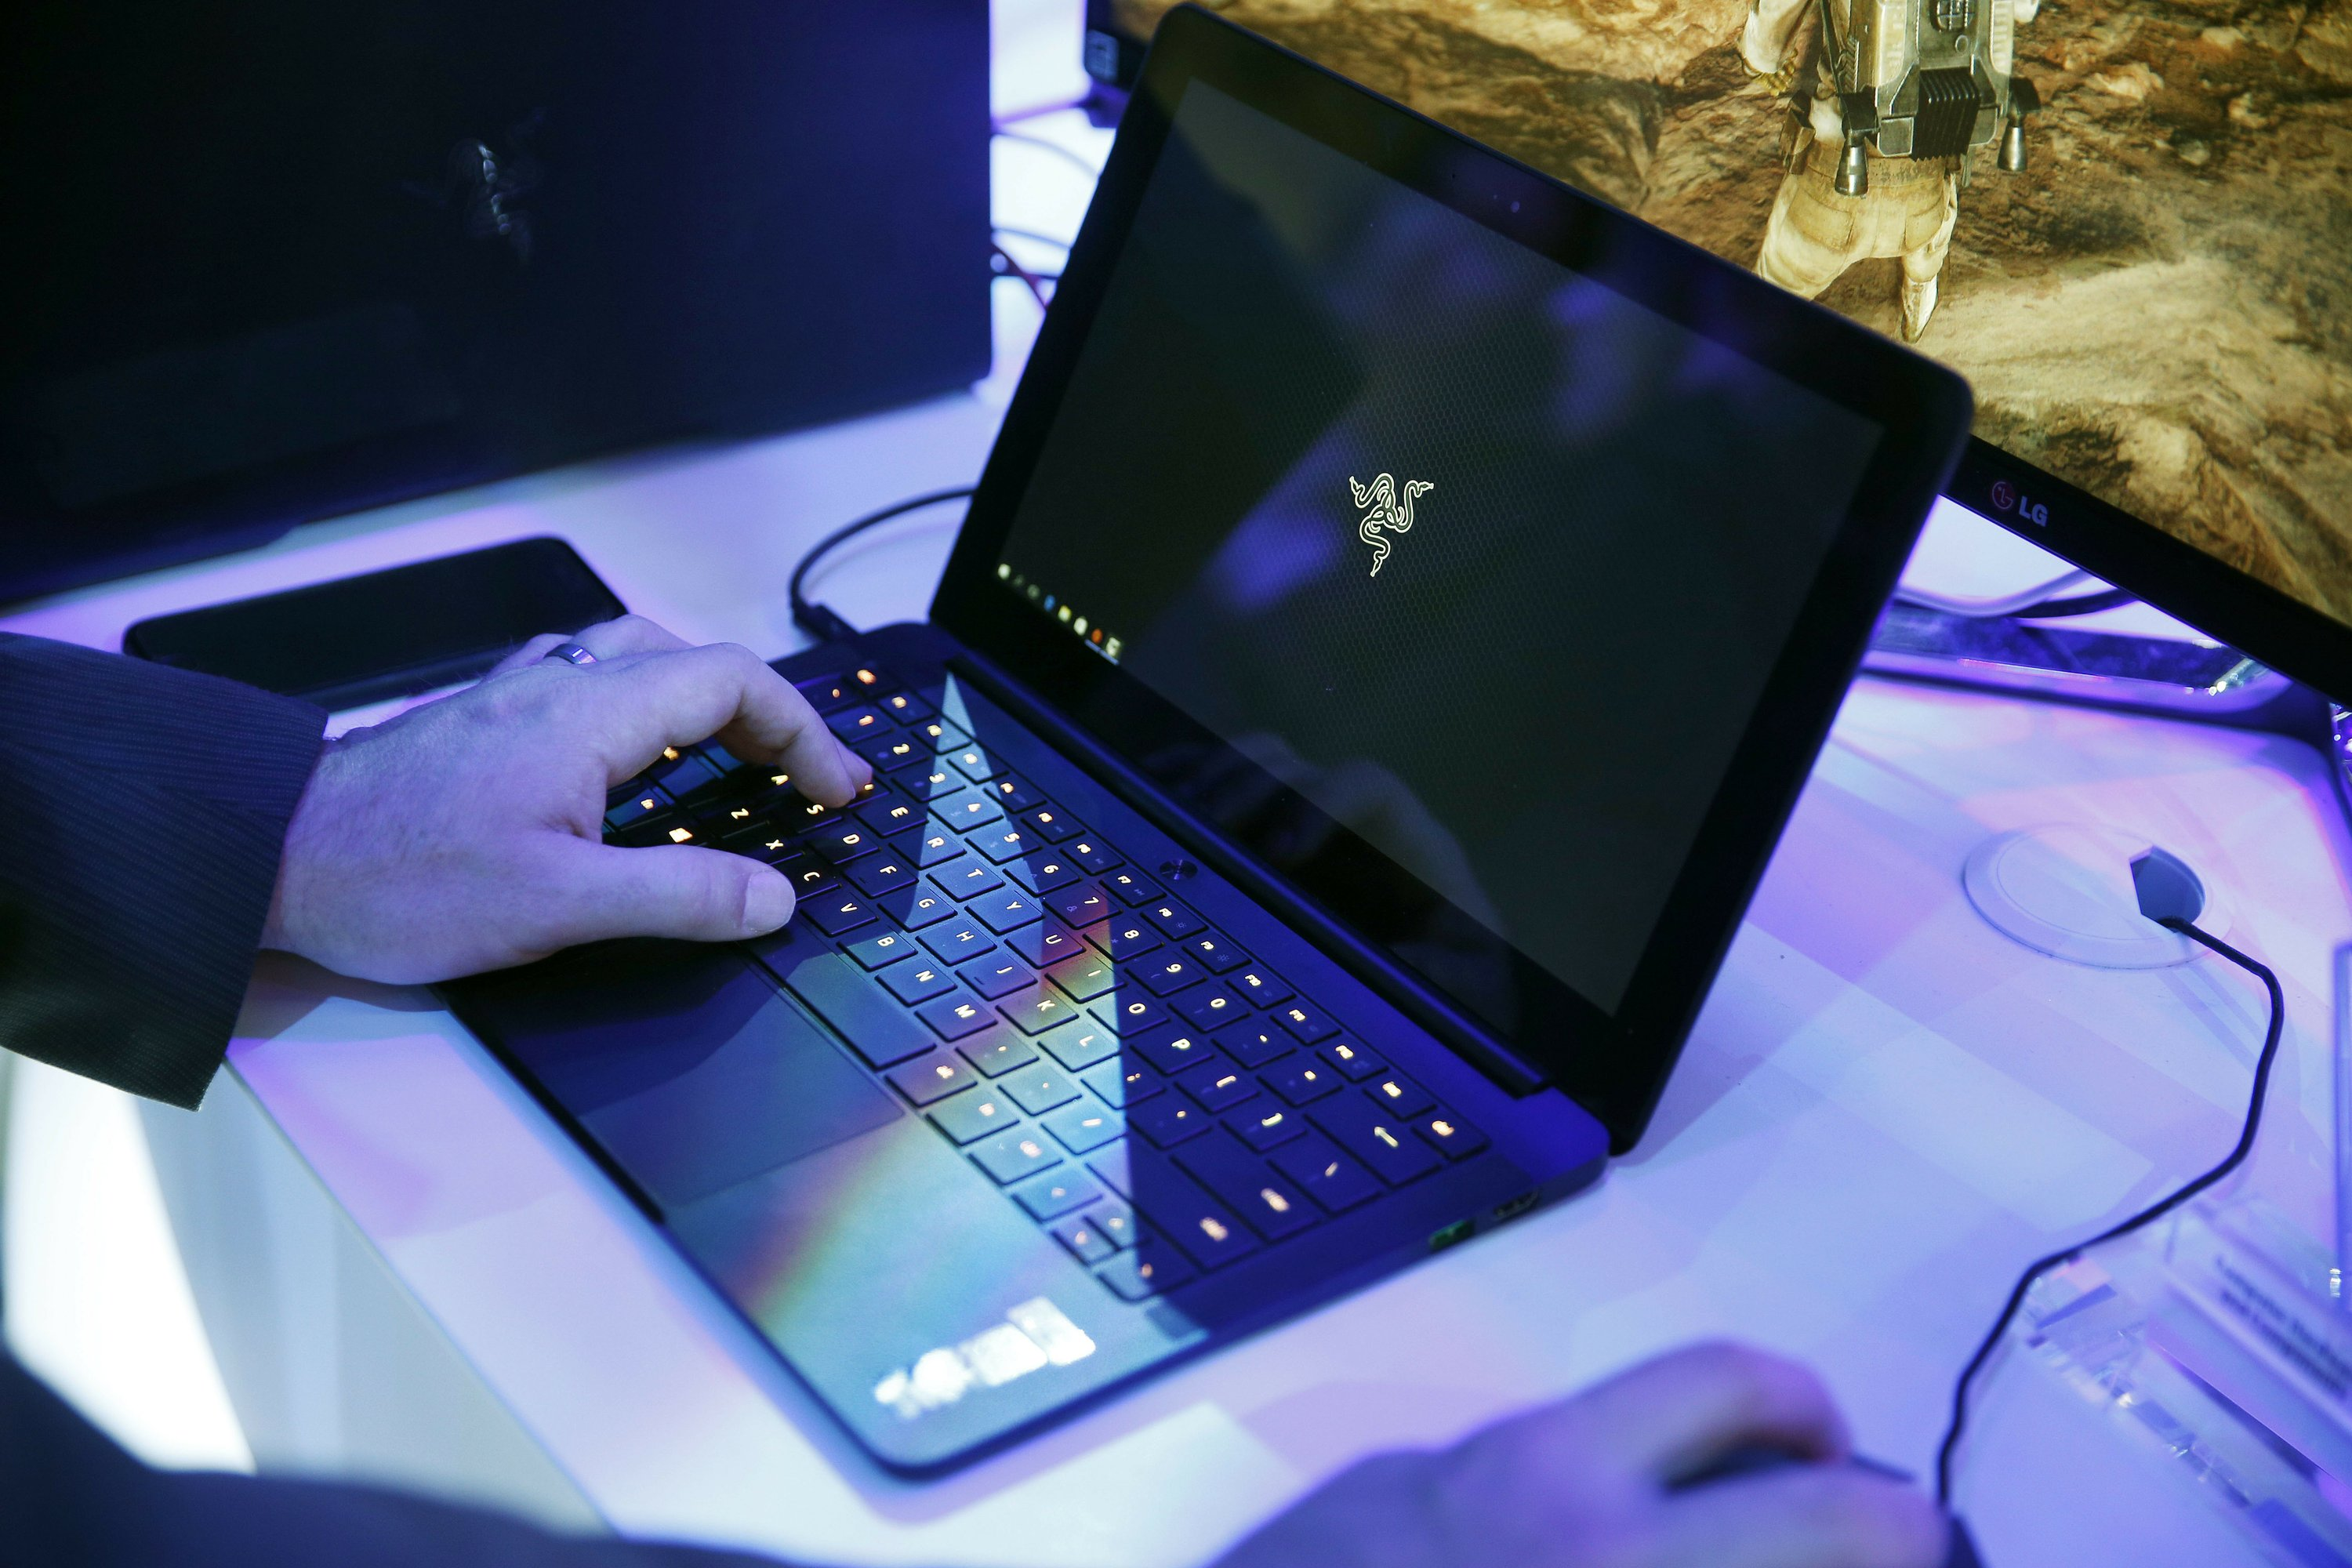 Ban aimed at electronics in cabins of some US-bound flights